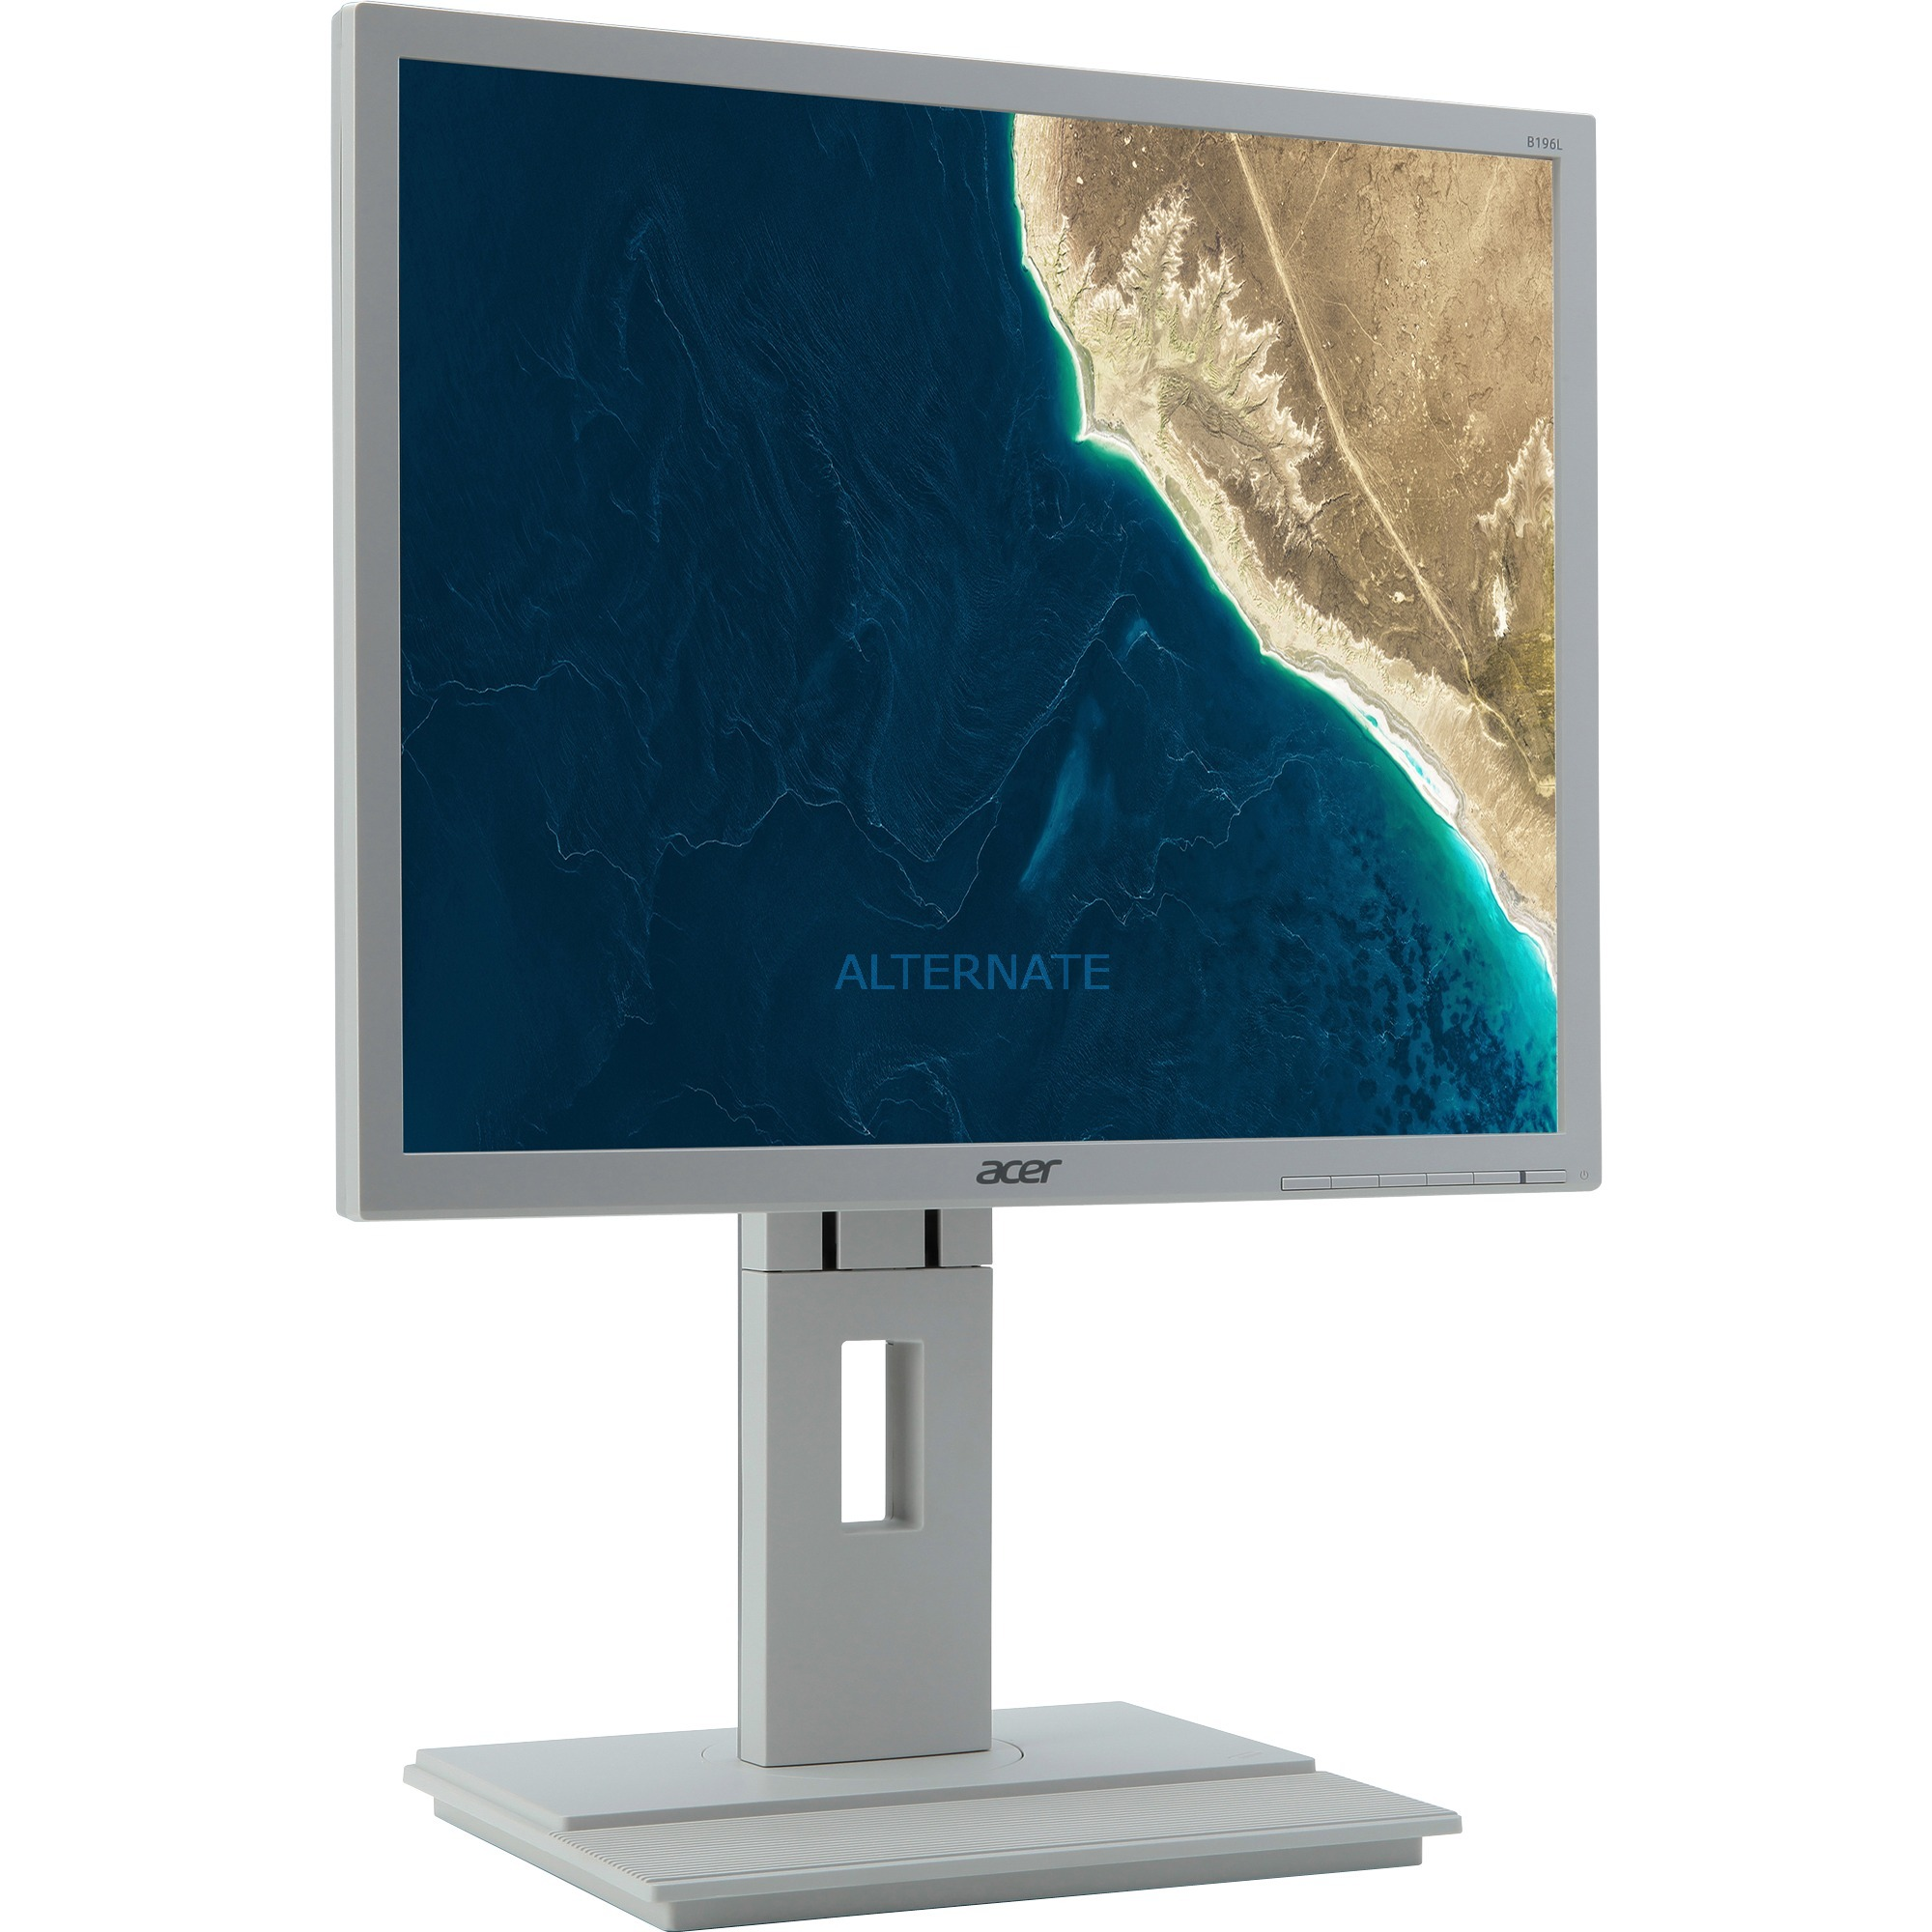 "B6 B196LA LED display 48,3 cm (19"") 1280 x 1024 Pixeles SXGA Plana Mate Blanco, Monitor LED"